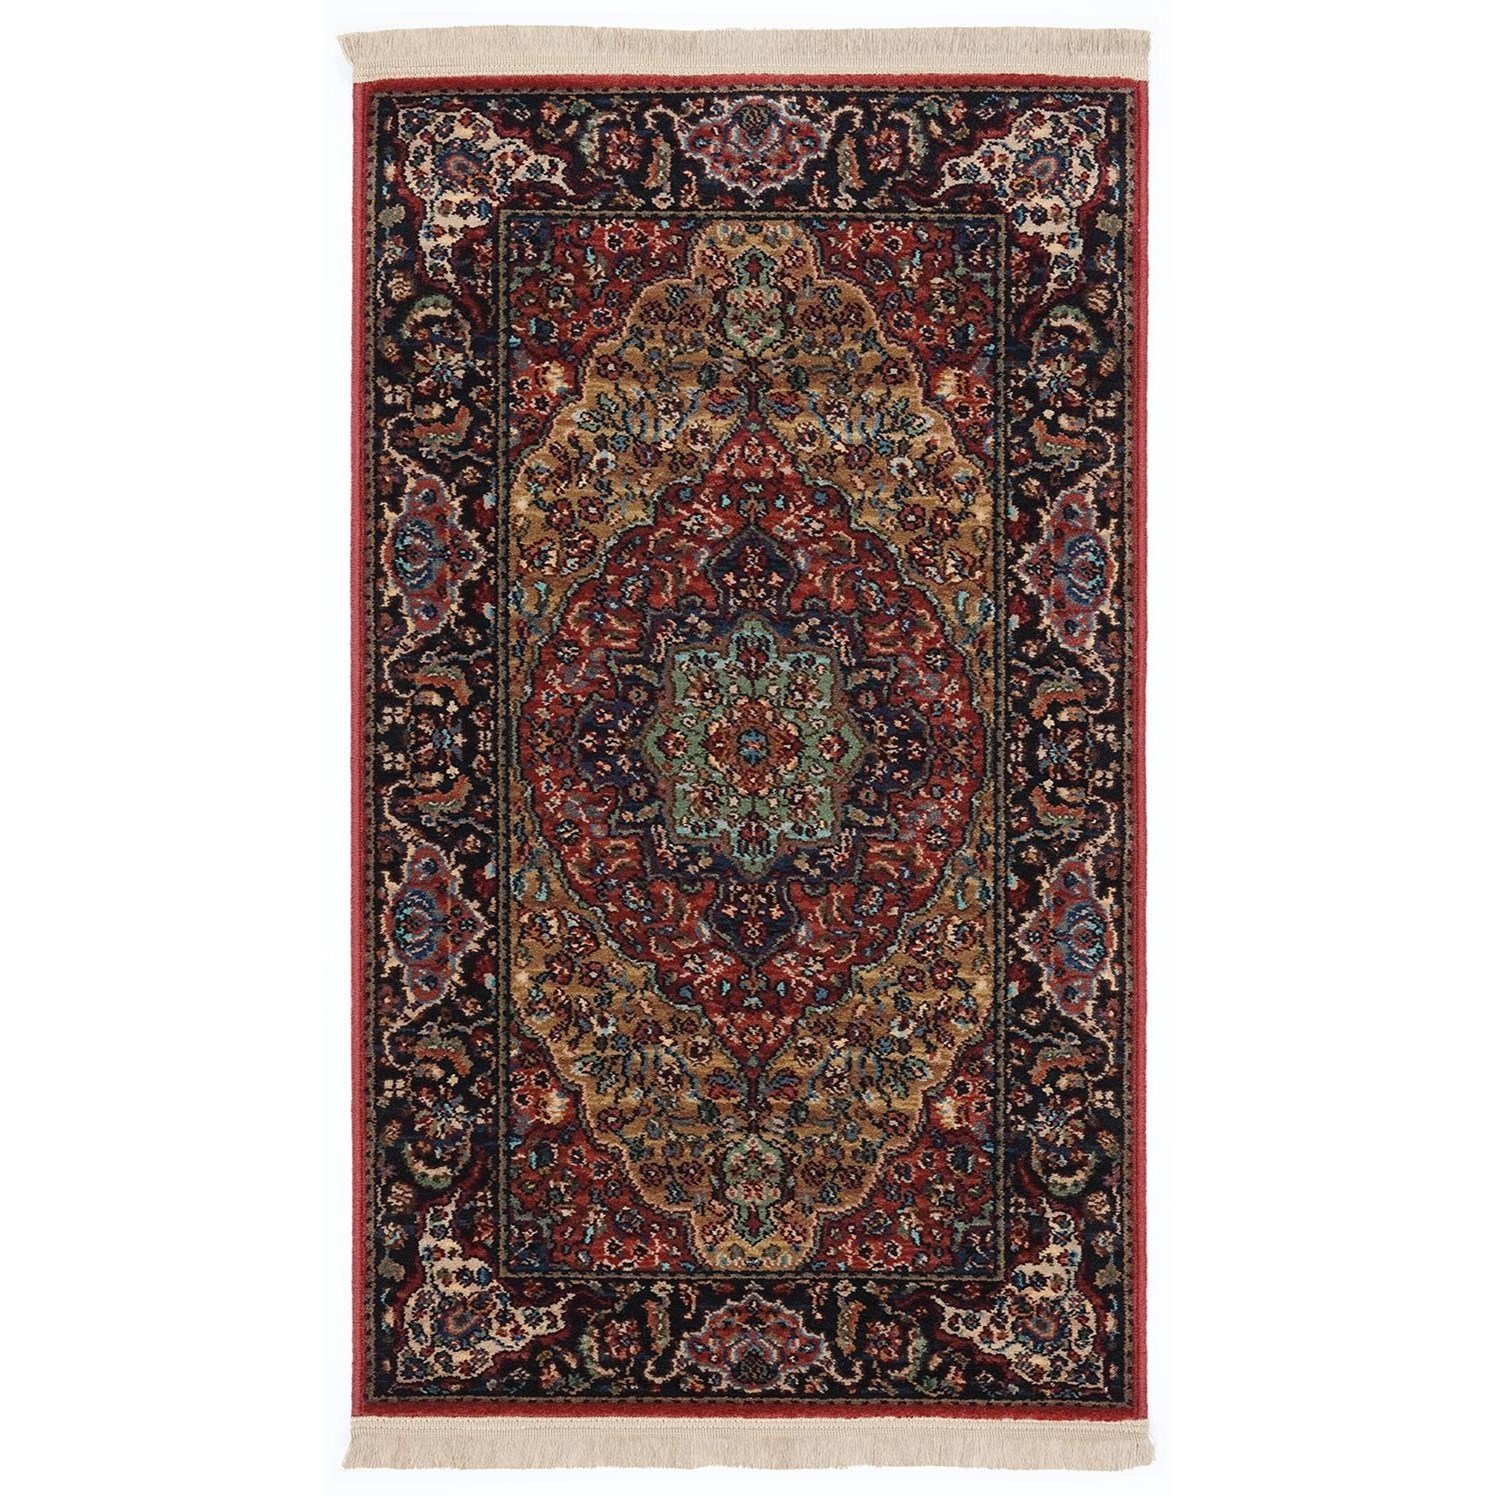 Original Karastan 4'3x6' Medallion Kirman Rug by Karastan Rugs at Darvin Furniture